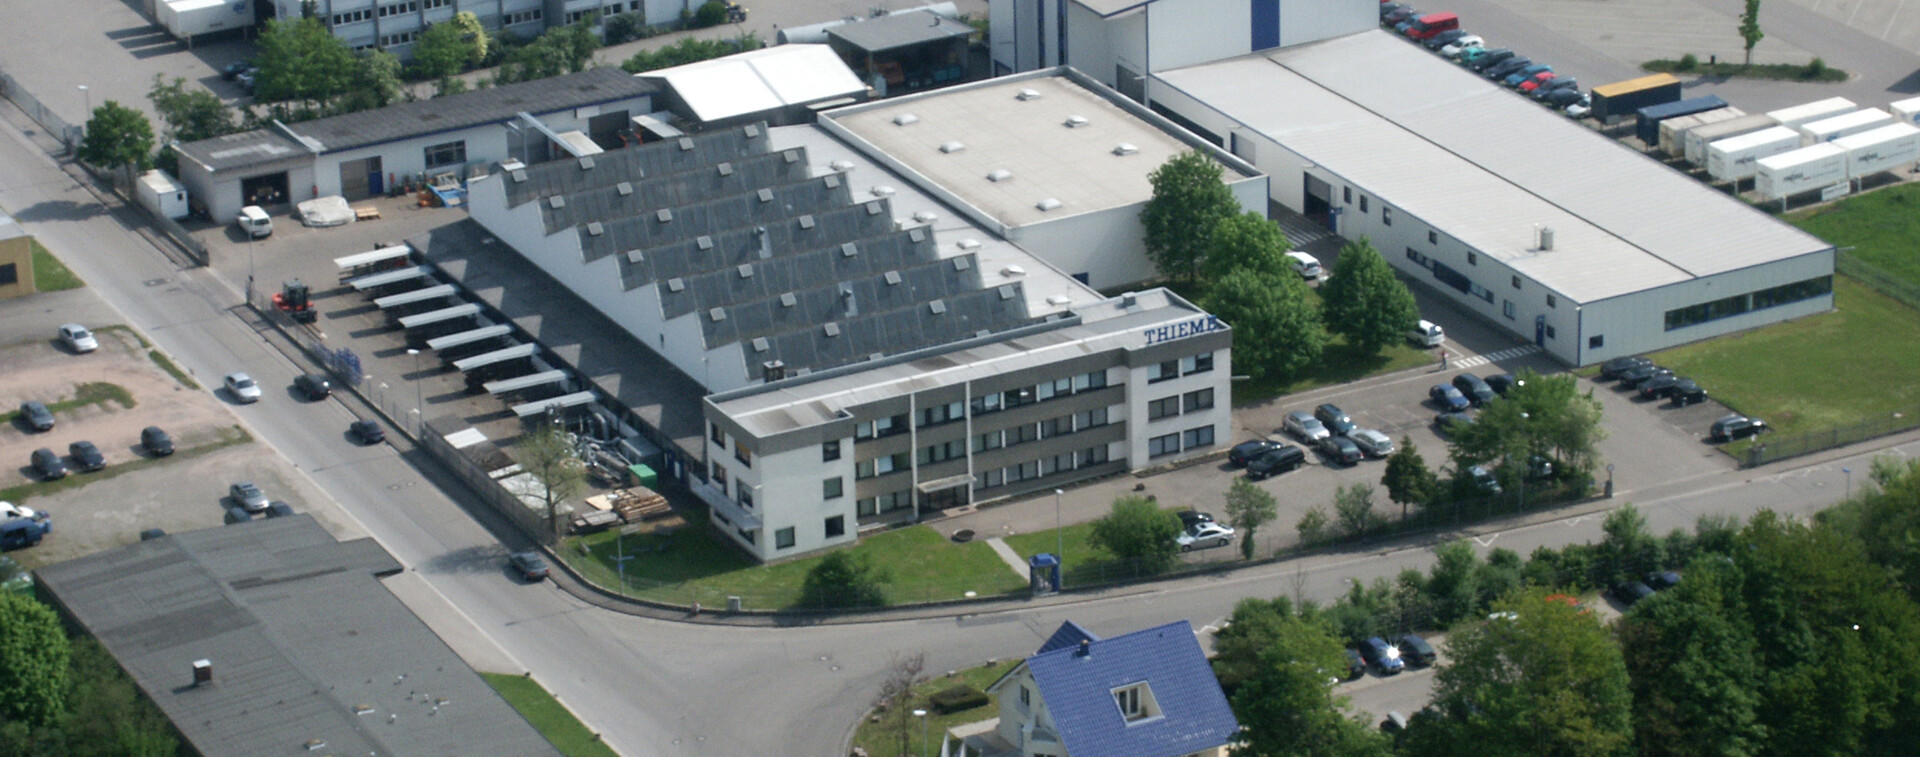 Thieme Printing Systems - Industrial area Rohlache - Aerial view